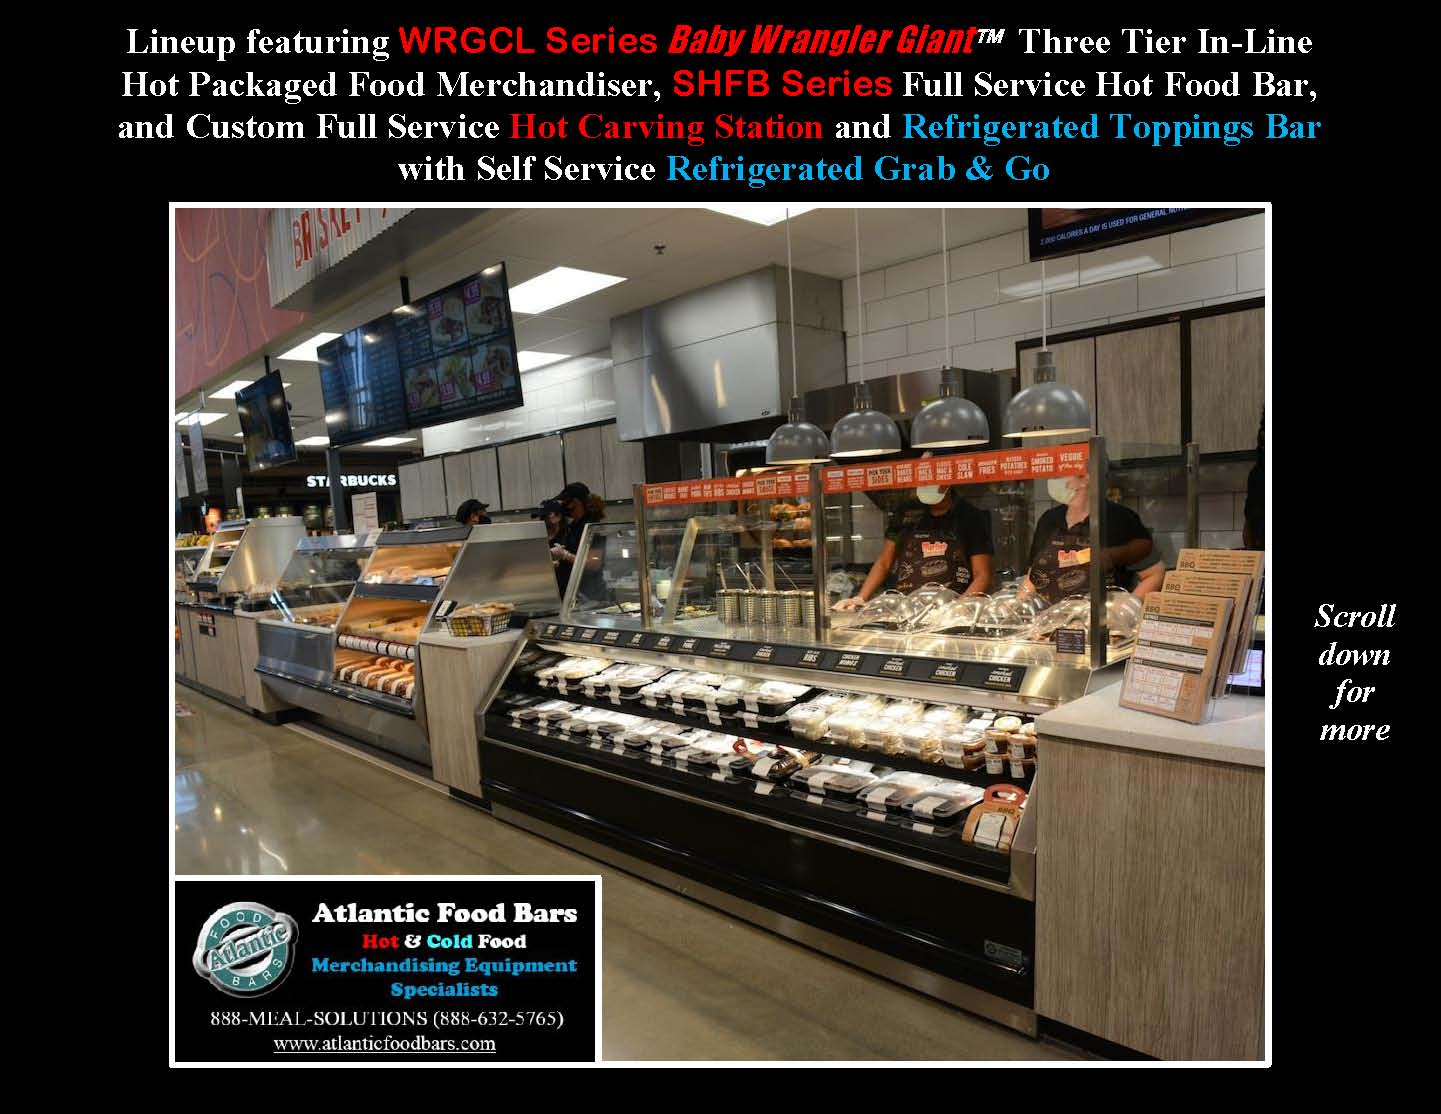 Atlantic Food Bars - Hot and Cold Prepared Foods Lineup including Custom Carving Station and Toppings Bar, Hot Packaged Food and Refrigerated Grab and Go - WRGCL SHFB_Page_3